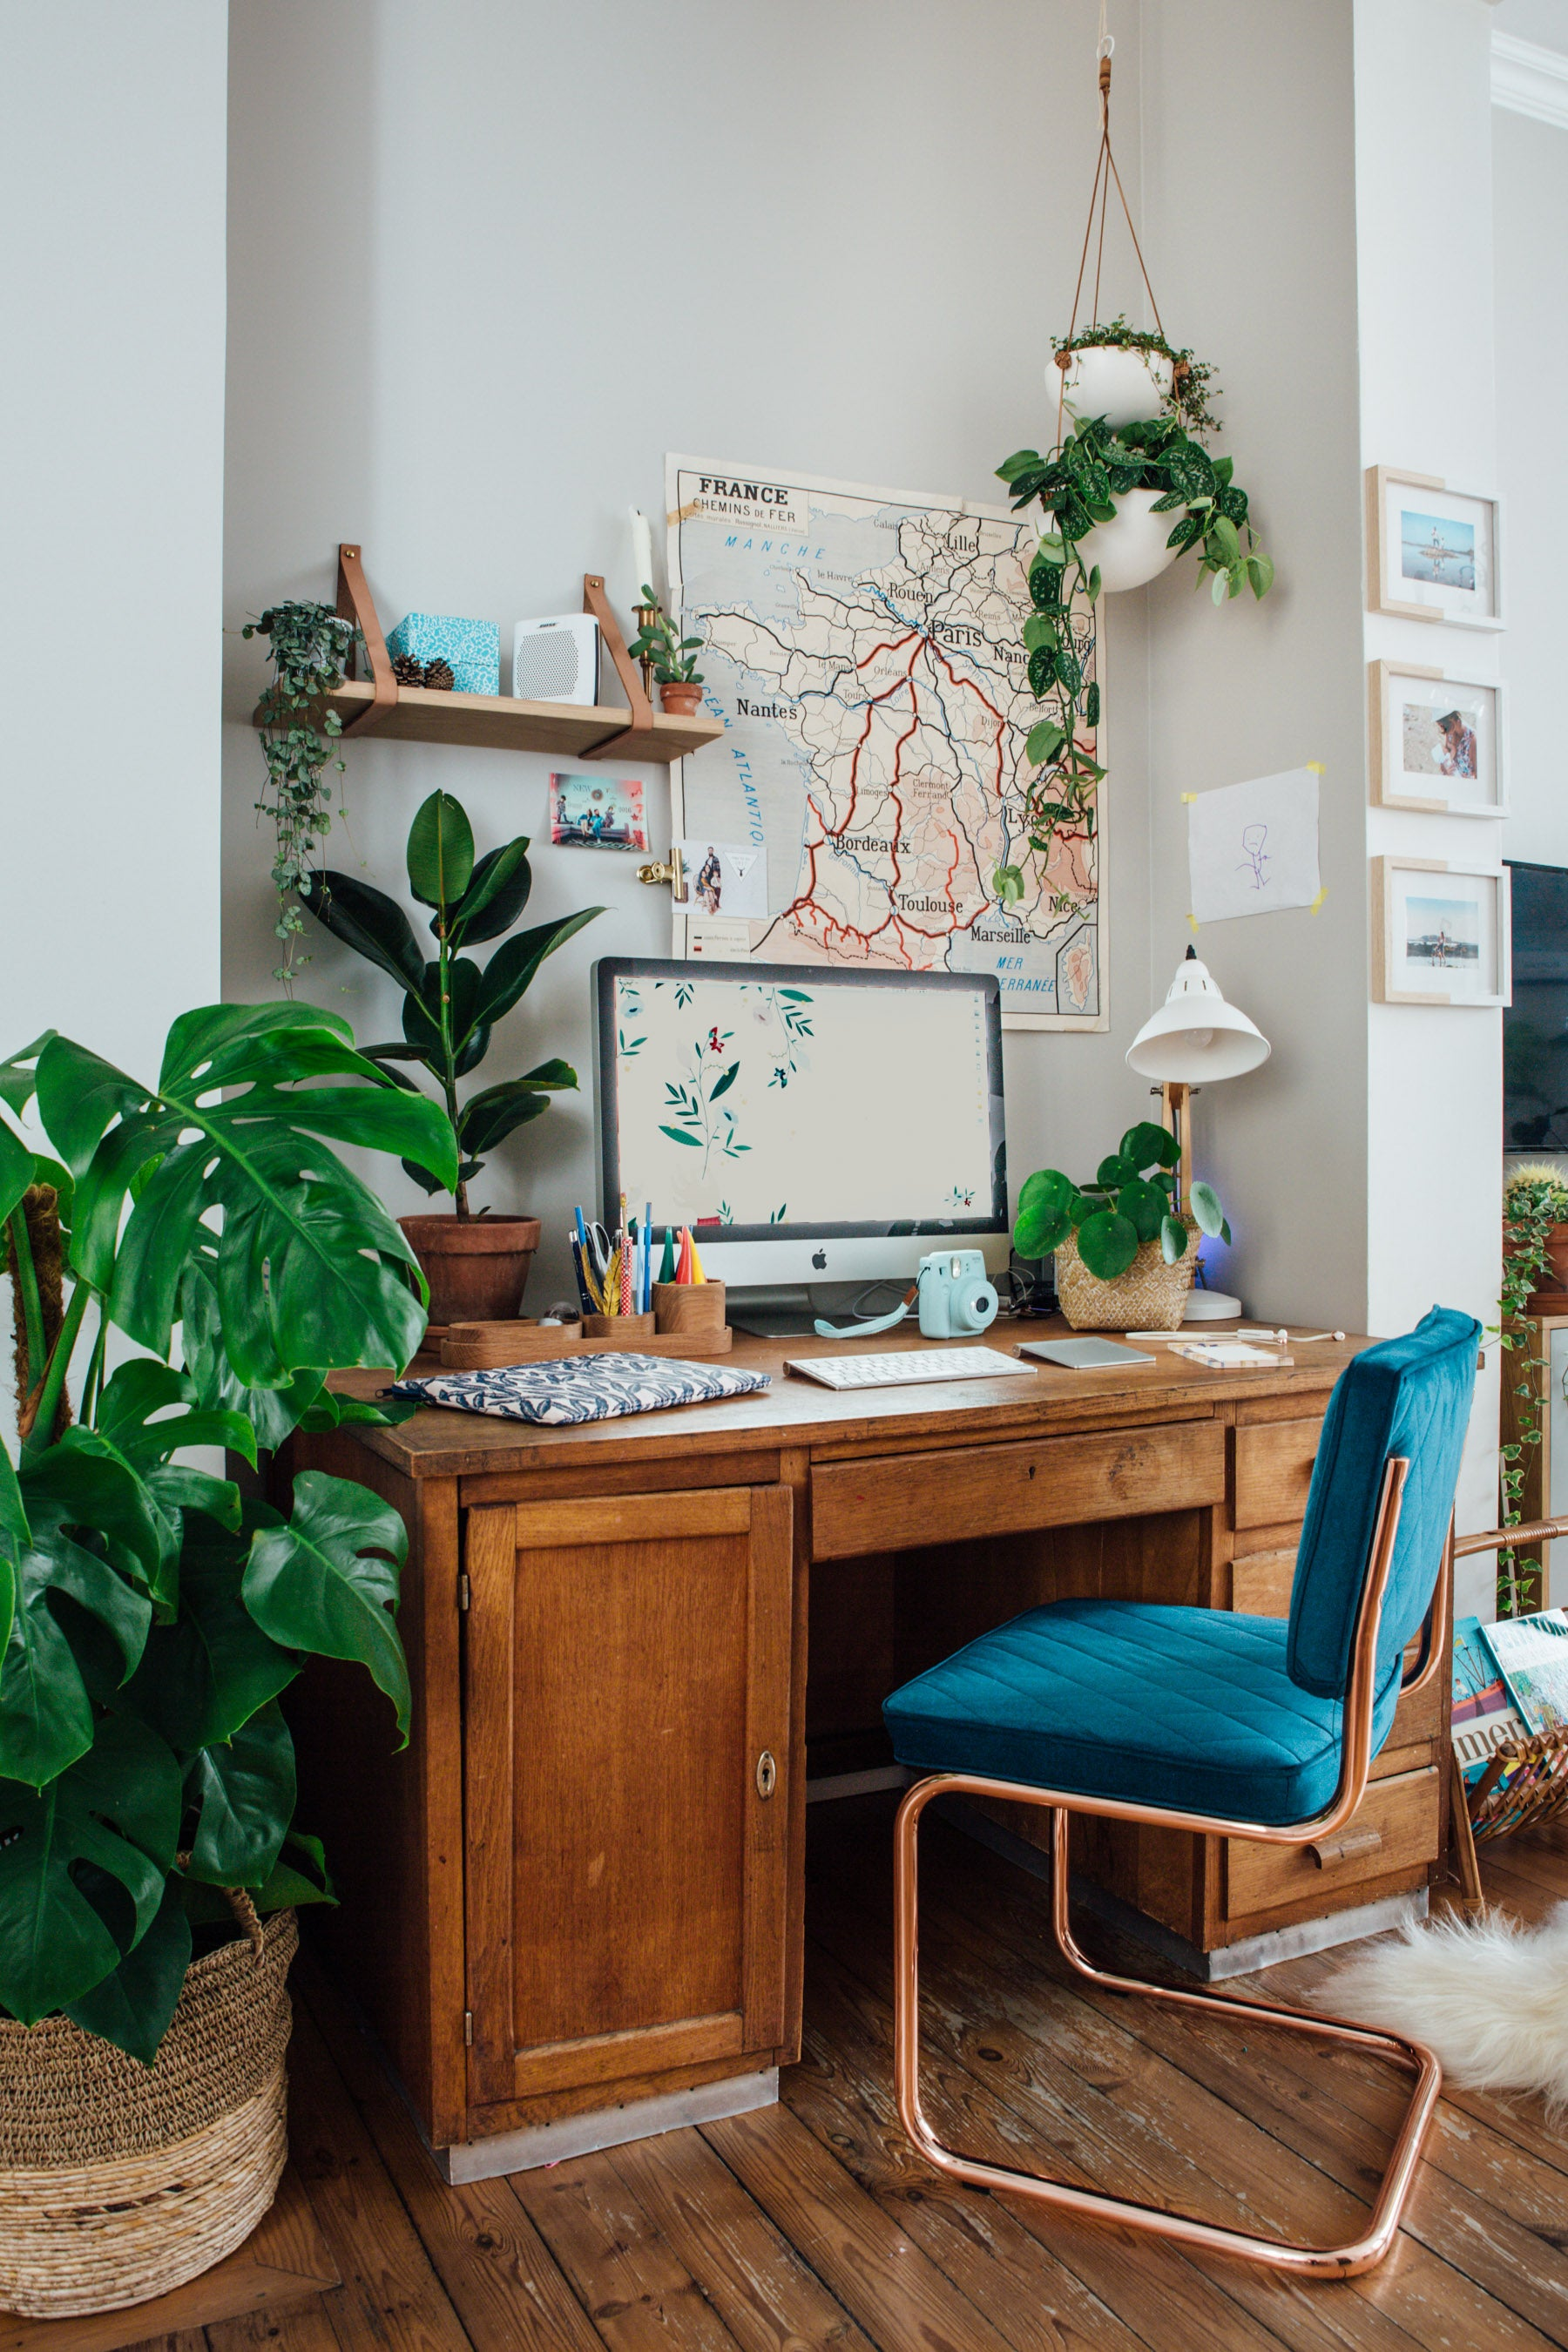 How to Create a Workspace at Home - Design School Sunday